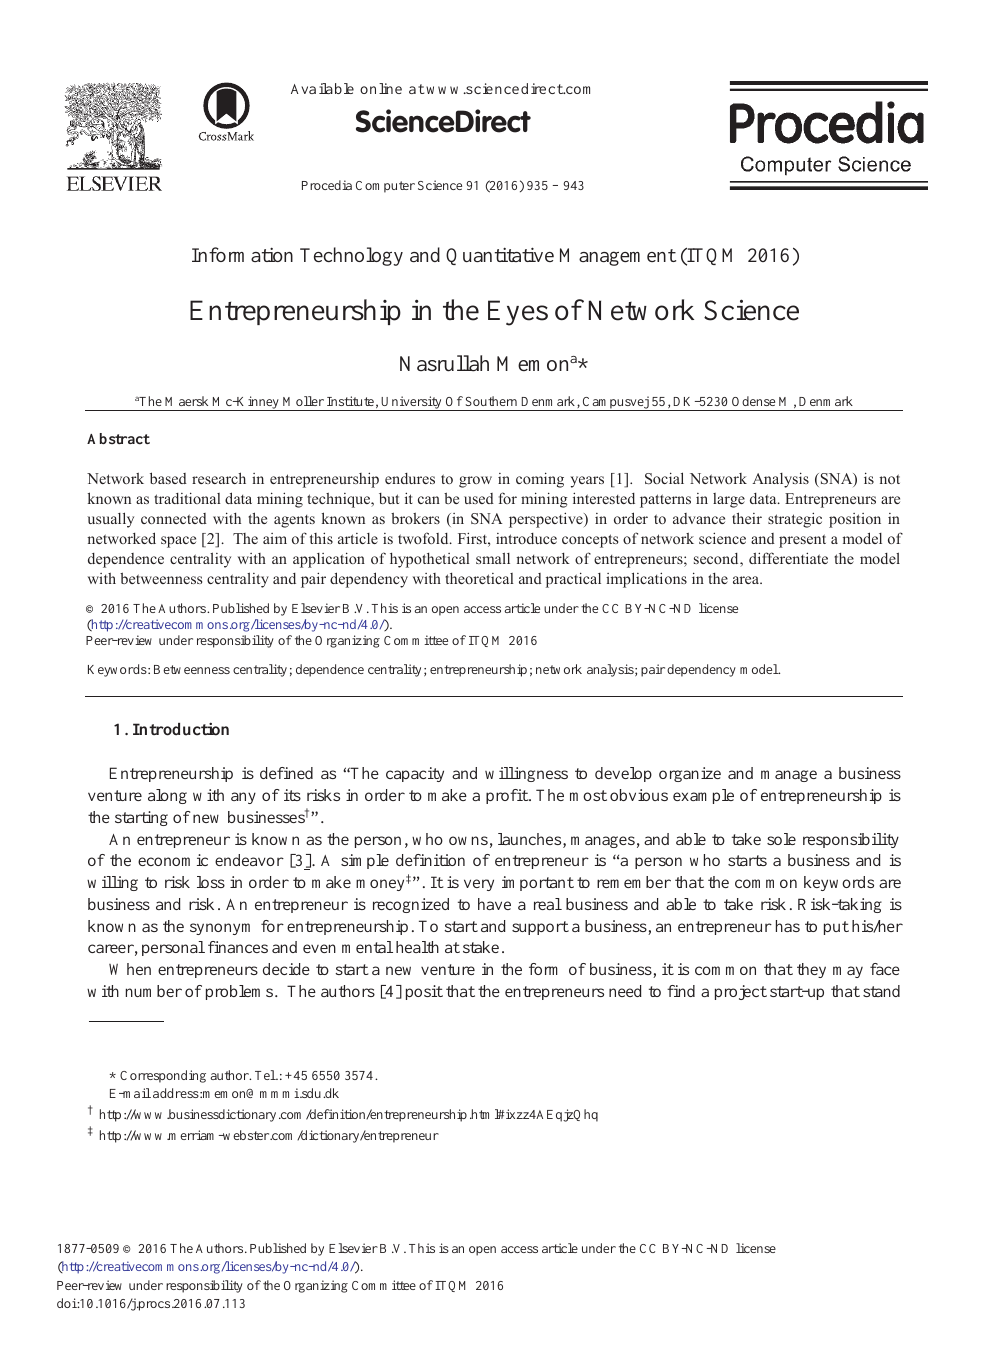 Entrepreneurship In The Eyes Of Network Science Topic Of